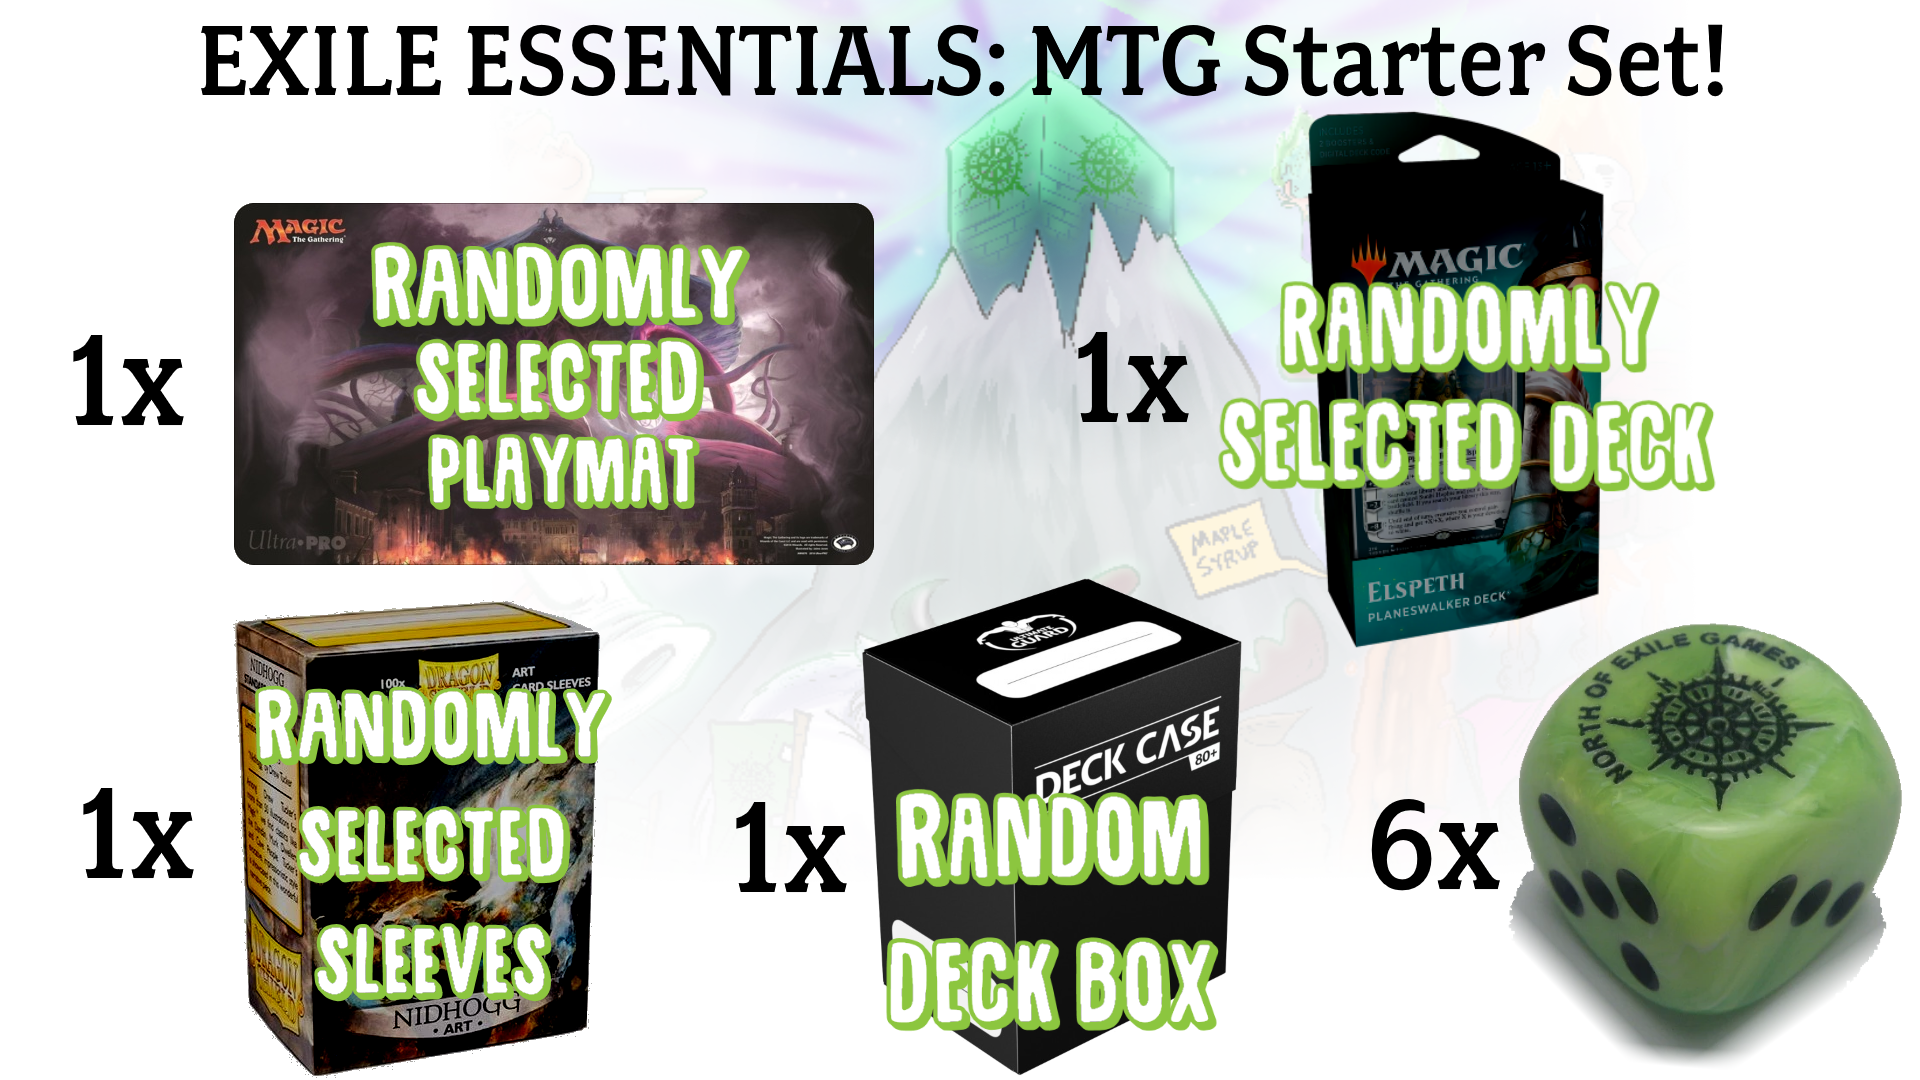 Exile Essentials Magic: The Gathering Starter Kit | North of Exile Games